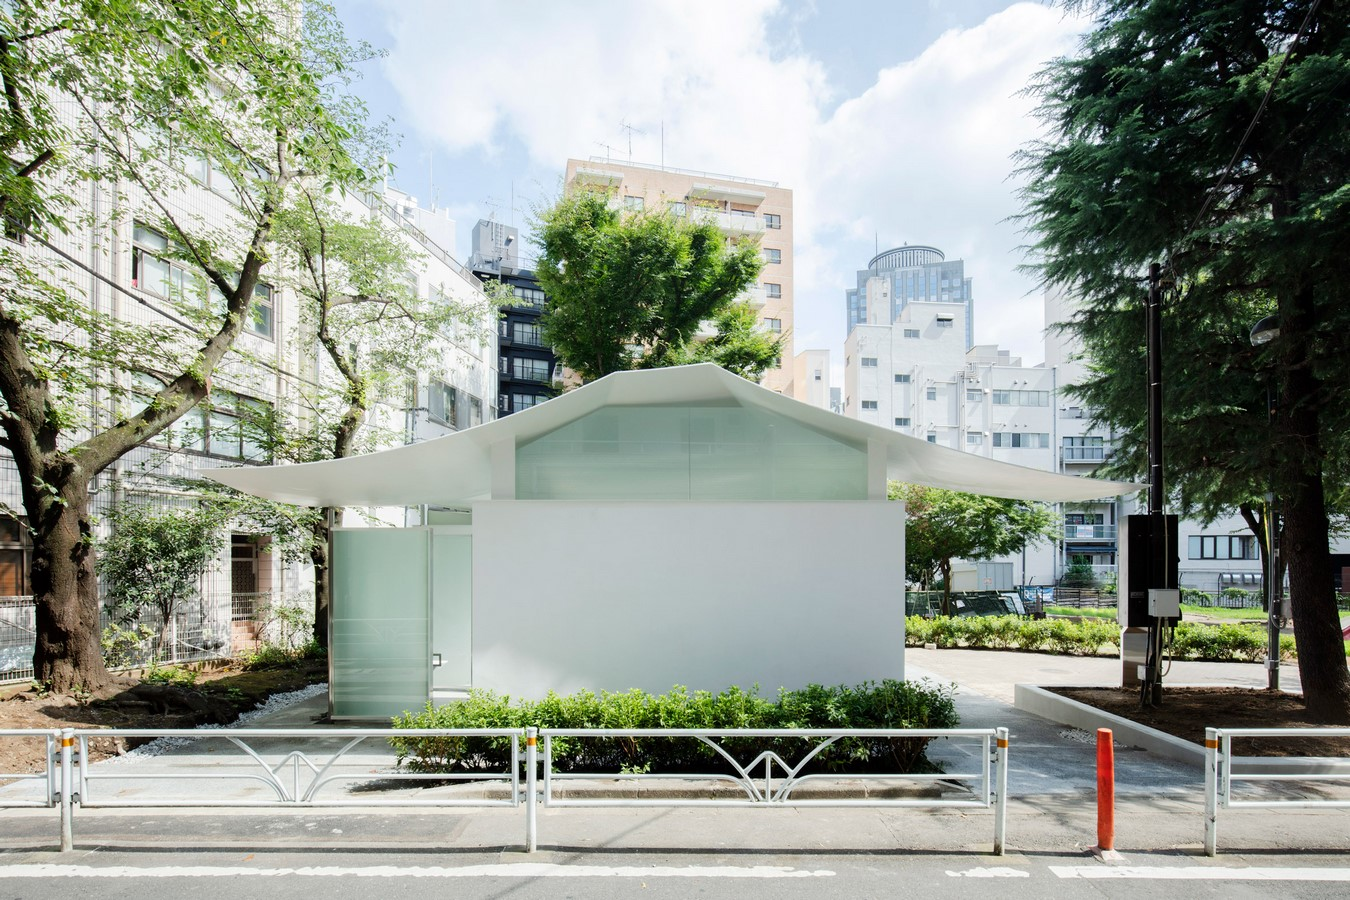 Fumikhiko Maki designs Toilet with the curved roof  'Squid Toilet' - Sheet3